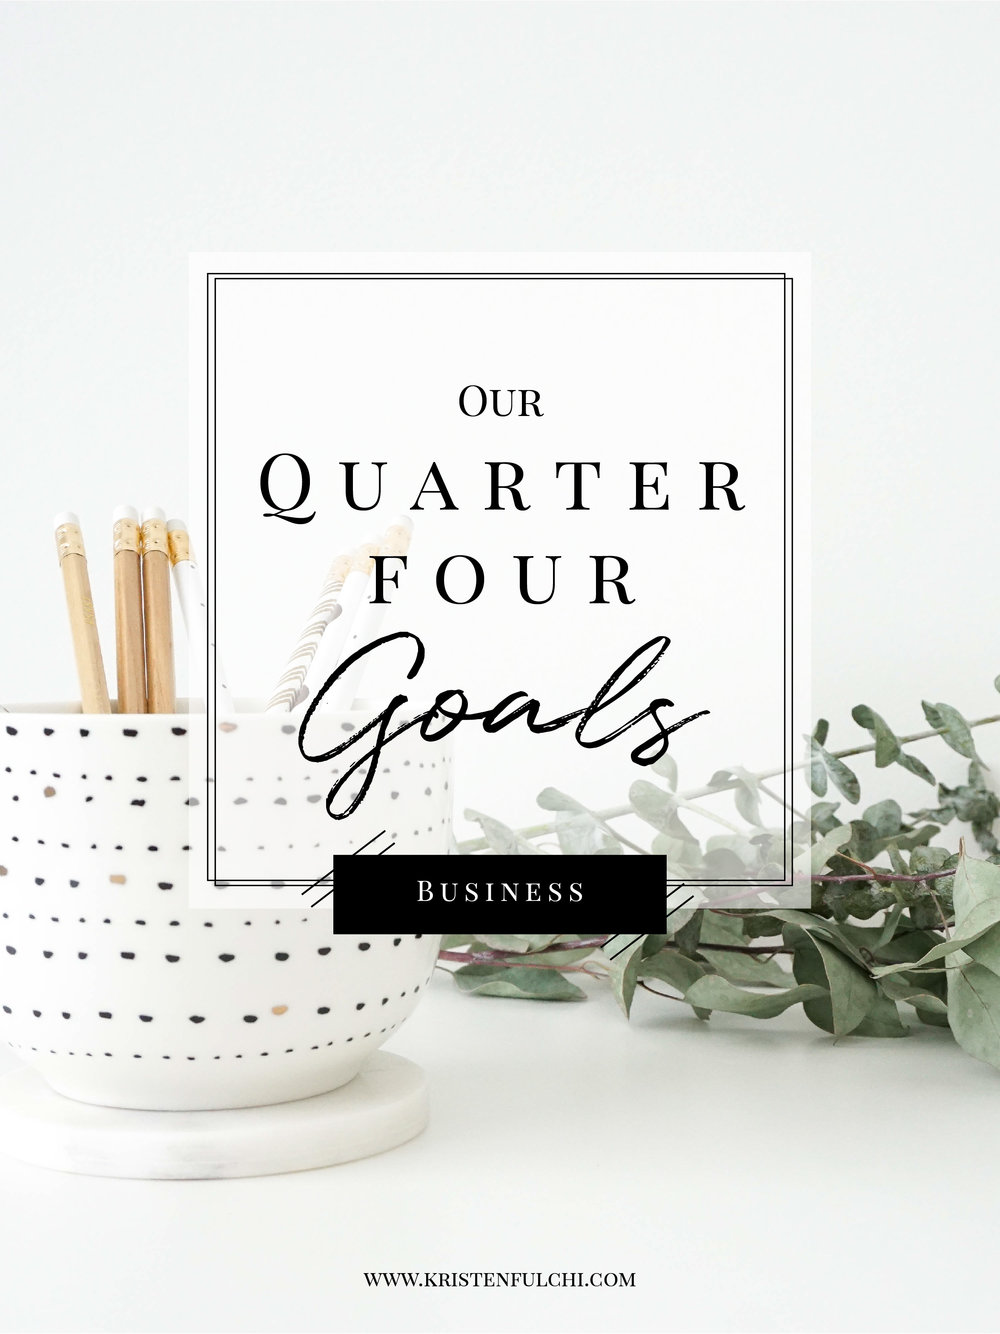 our-quarter-four-business-goals-setting-goals-in-your-creative-business-01.jpg